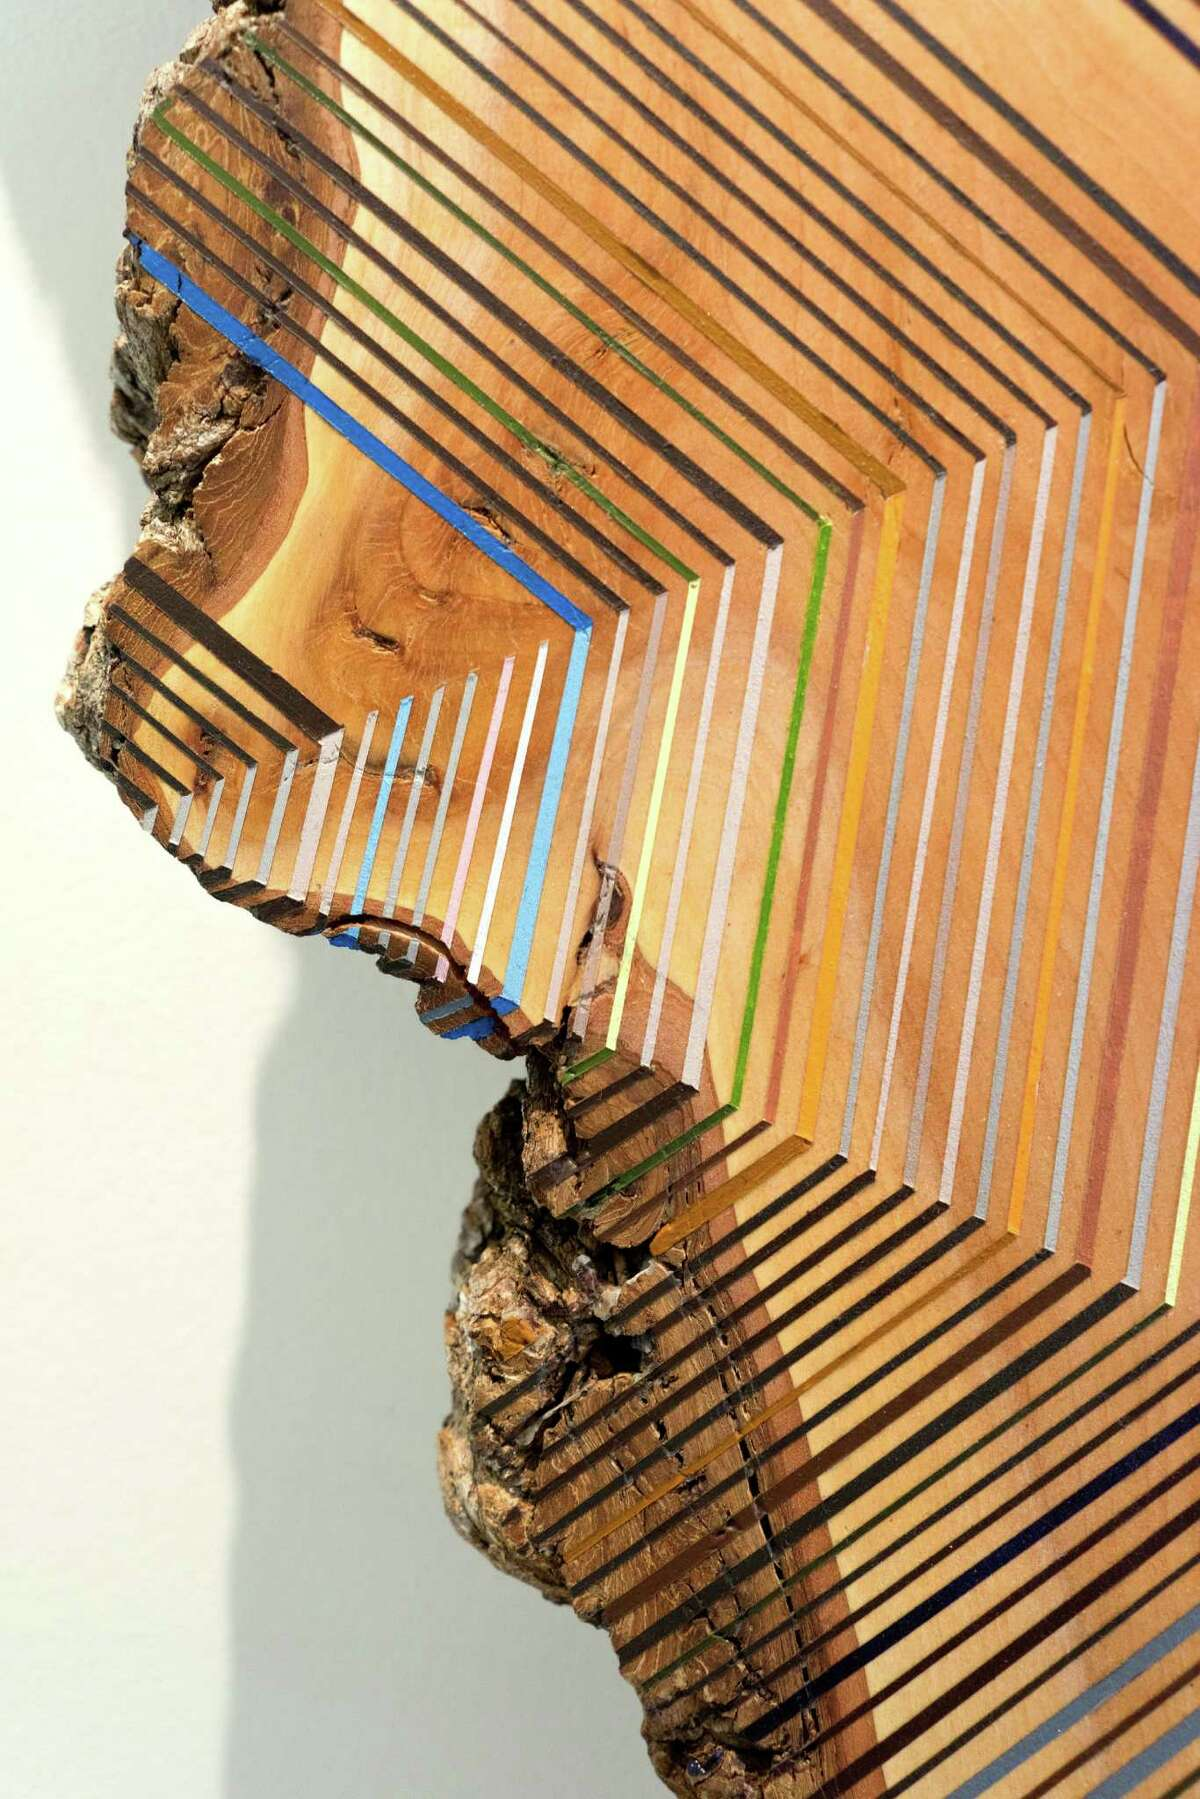 Middlebrook, Inside Out #2, 2014, acrylic on maple, detail